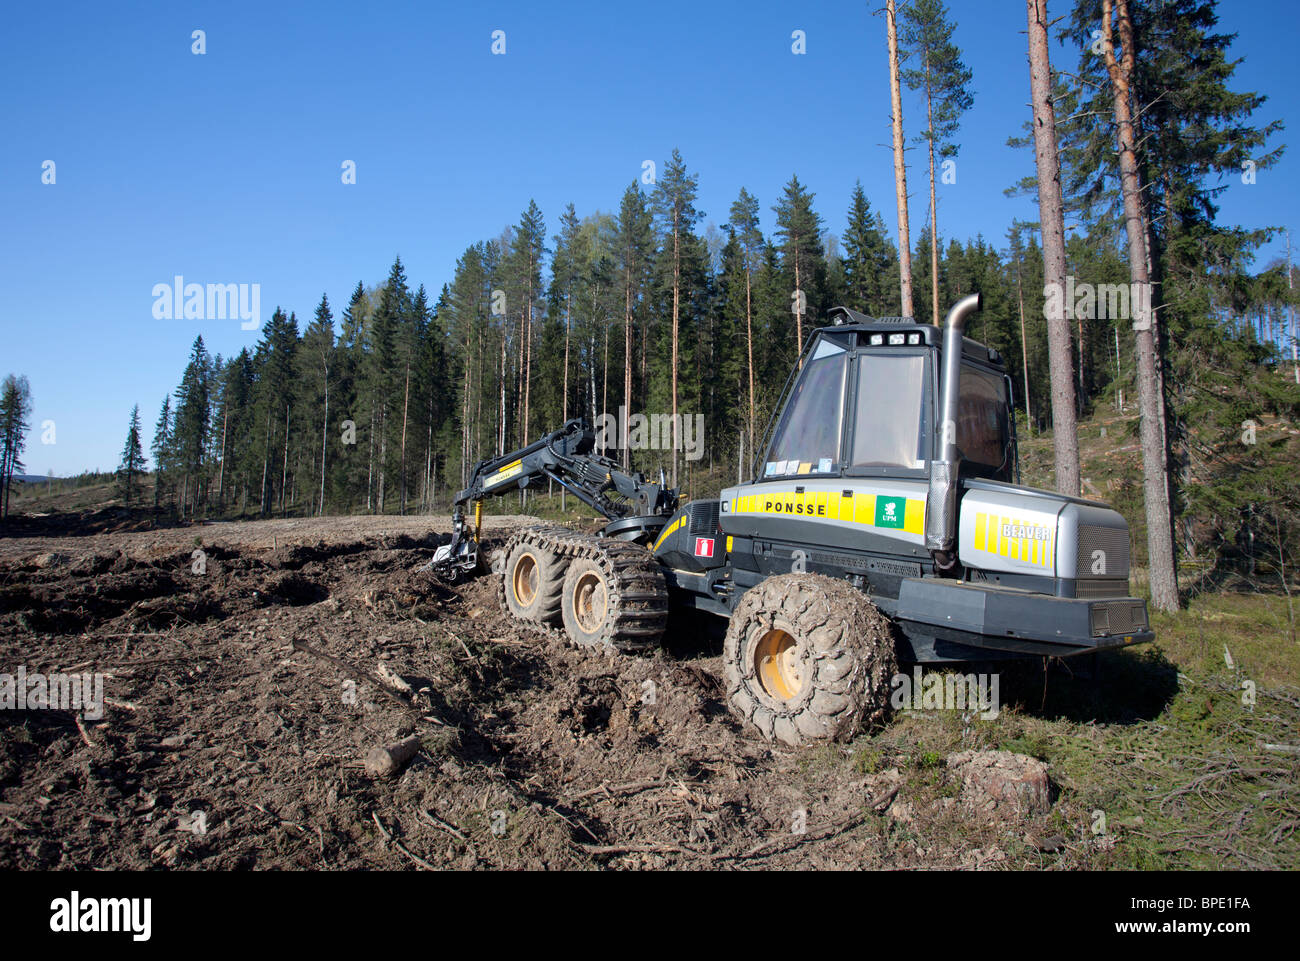 Ponsse Beaver forest harvester at clear-cutting area , Finland - Stock Image